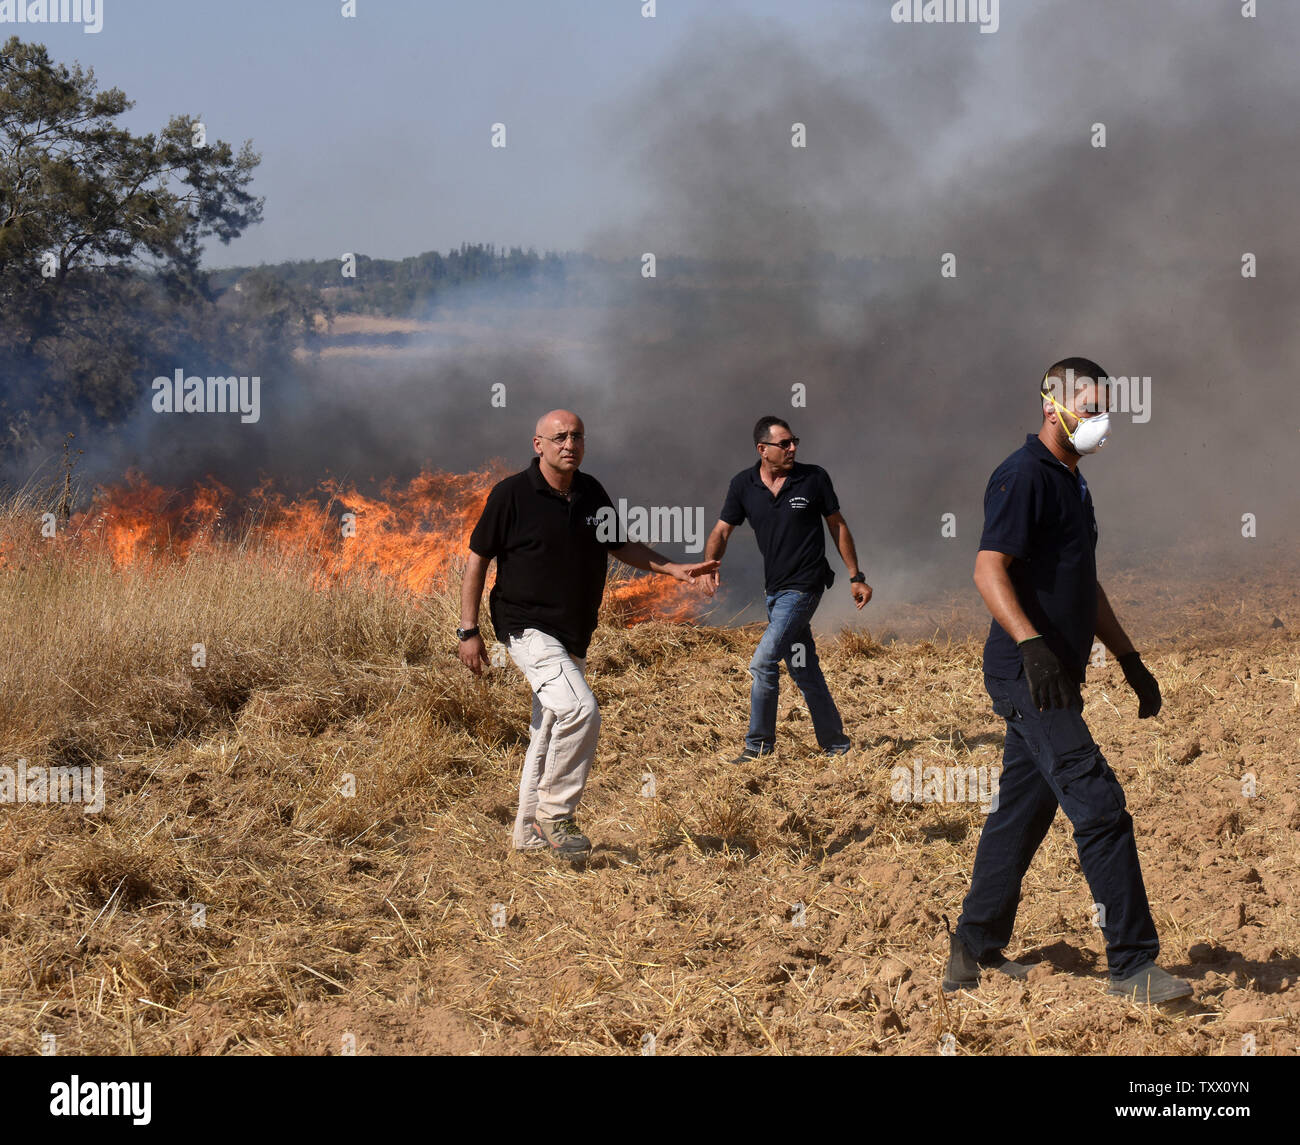 Israelis rush to a fire near Kibbutz Kfar Azza, along the border of the Gaza Strip, that was ignited by kites sent by Palestinian protesters in Gaza, June 5, 2018. Over 600 kites have been flown into Israel from the Gaza Strip, destroying 9000 square meters of crops and forests.    Photo by Debbie Hill/UPI - Stock Image